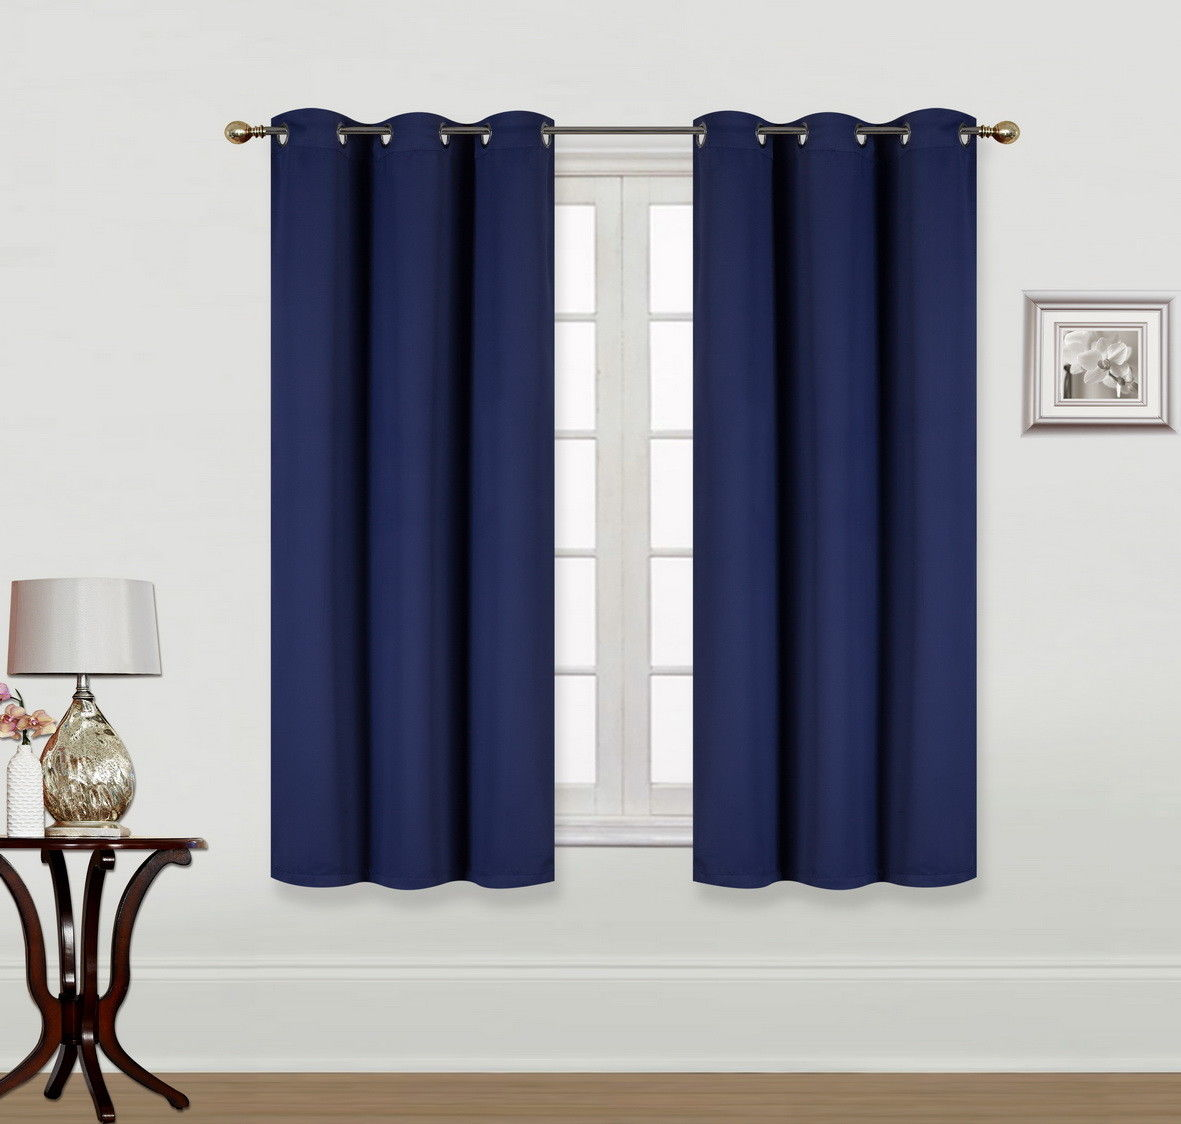 "(K68) NAVY BLUE 2-Piece Indoor and Outdoor Thermal Sun Blocking Grommet Window Curtain Set, Two (2) Panels 35"" x 63"" Each"